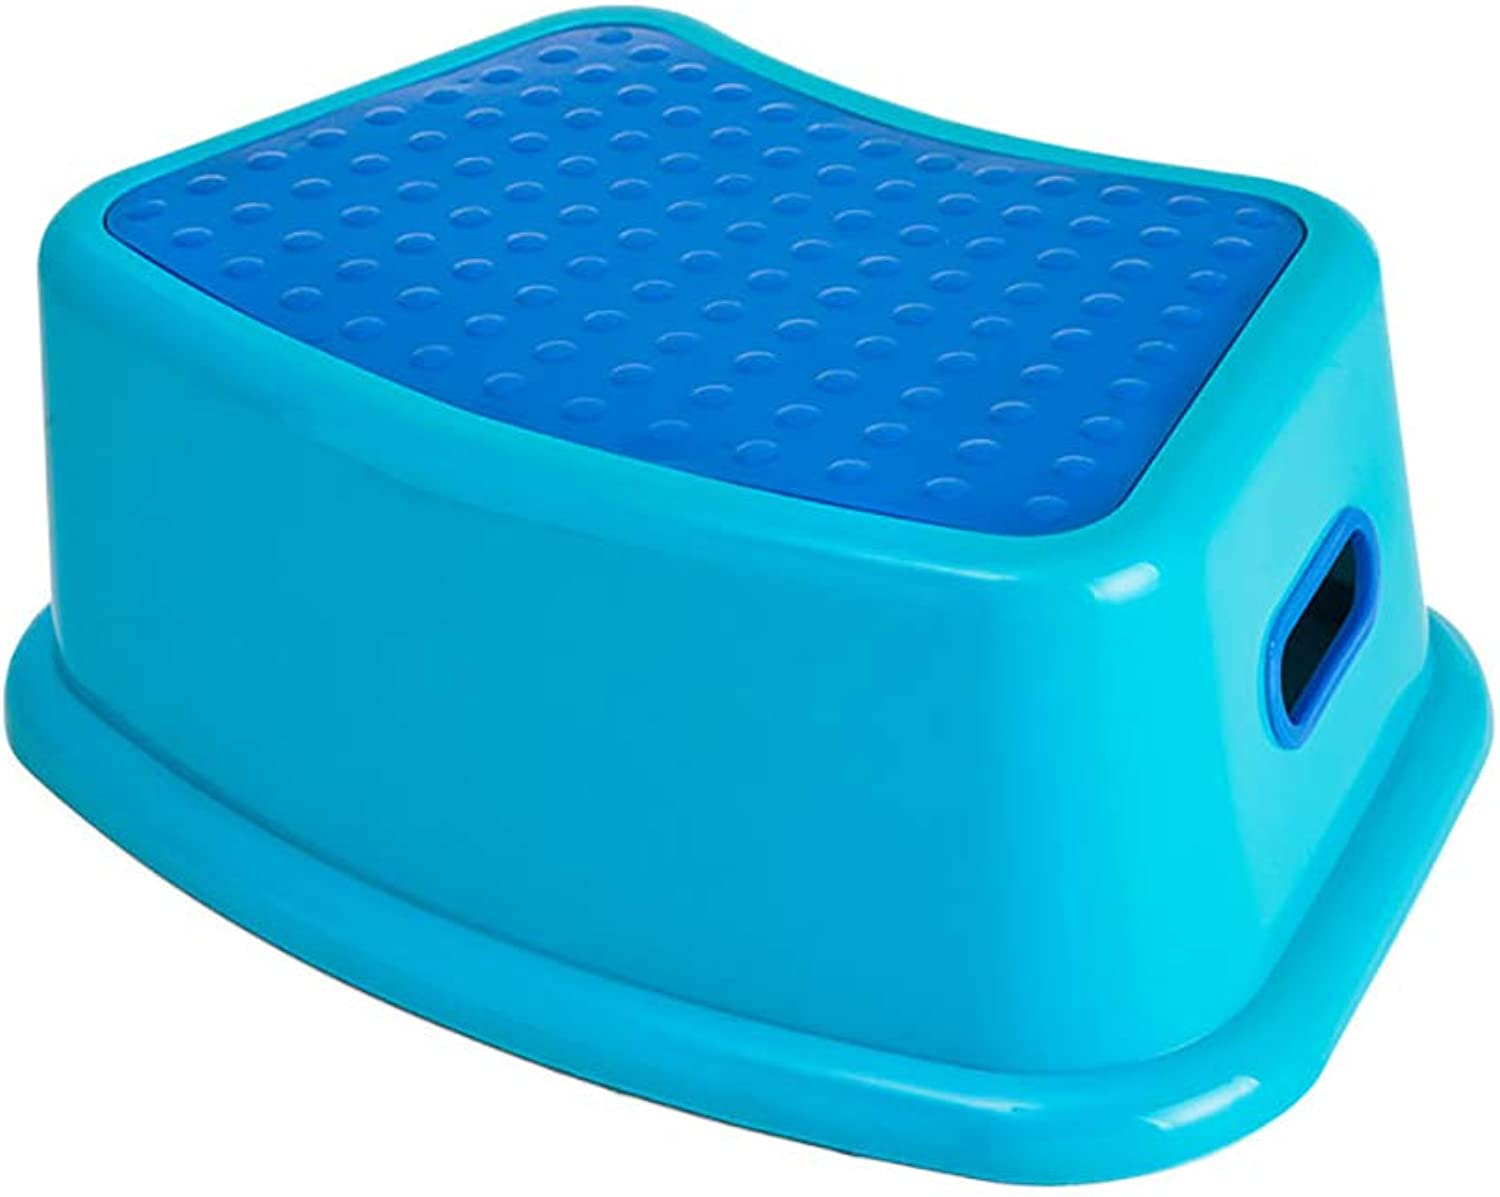 Kids Best Friend Boys bluee Stool, Soft-Grip Steps Provide Comfort and Safety